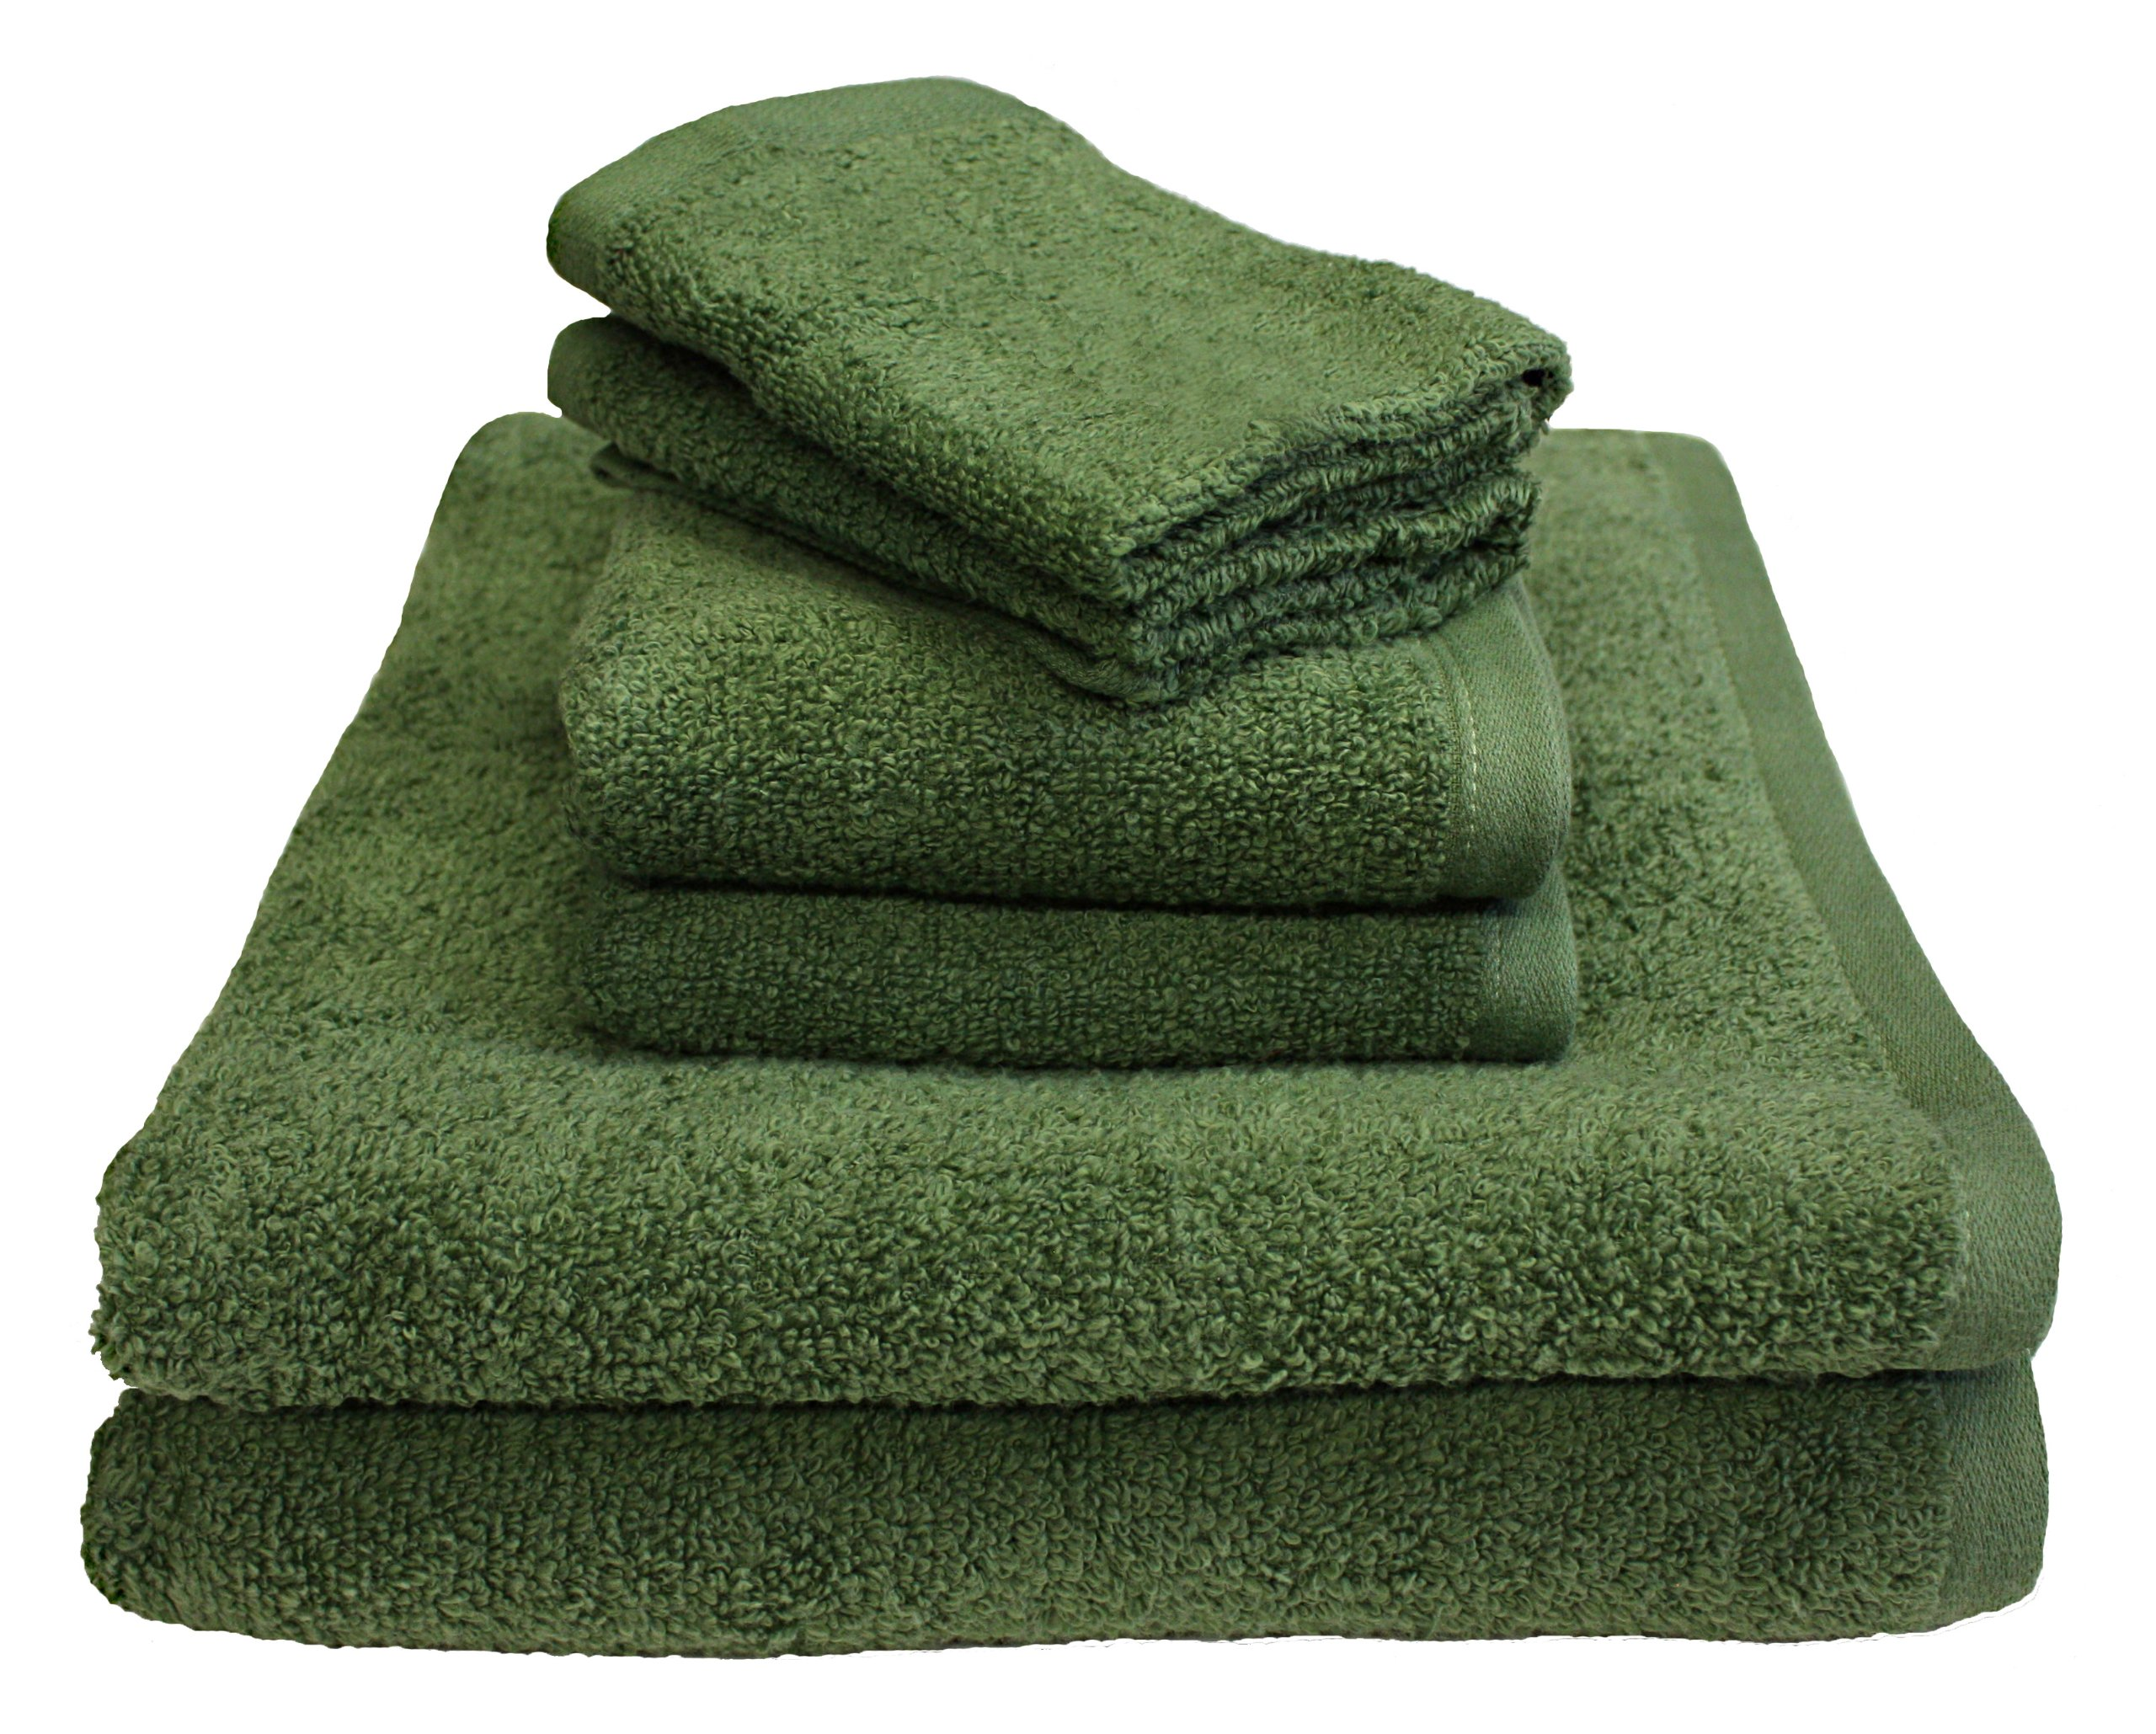 J & M Home Fashions Portofino Set Includes 2 Bath Hand Towels, and 2 Washcloths, 6 Piece, Thyme Green by J&M Home Fashions